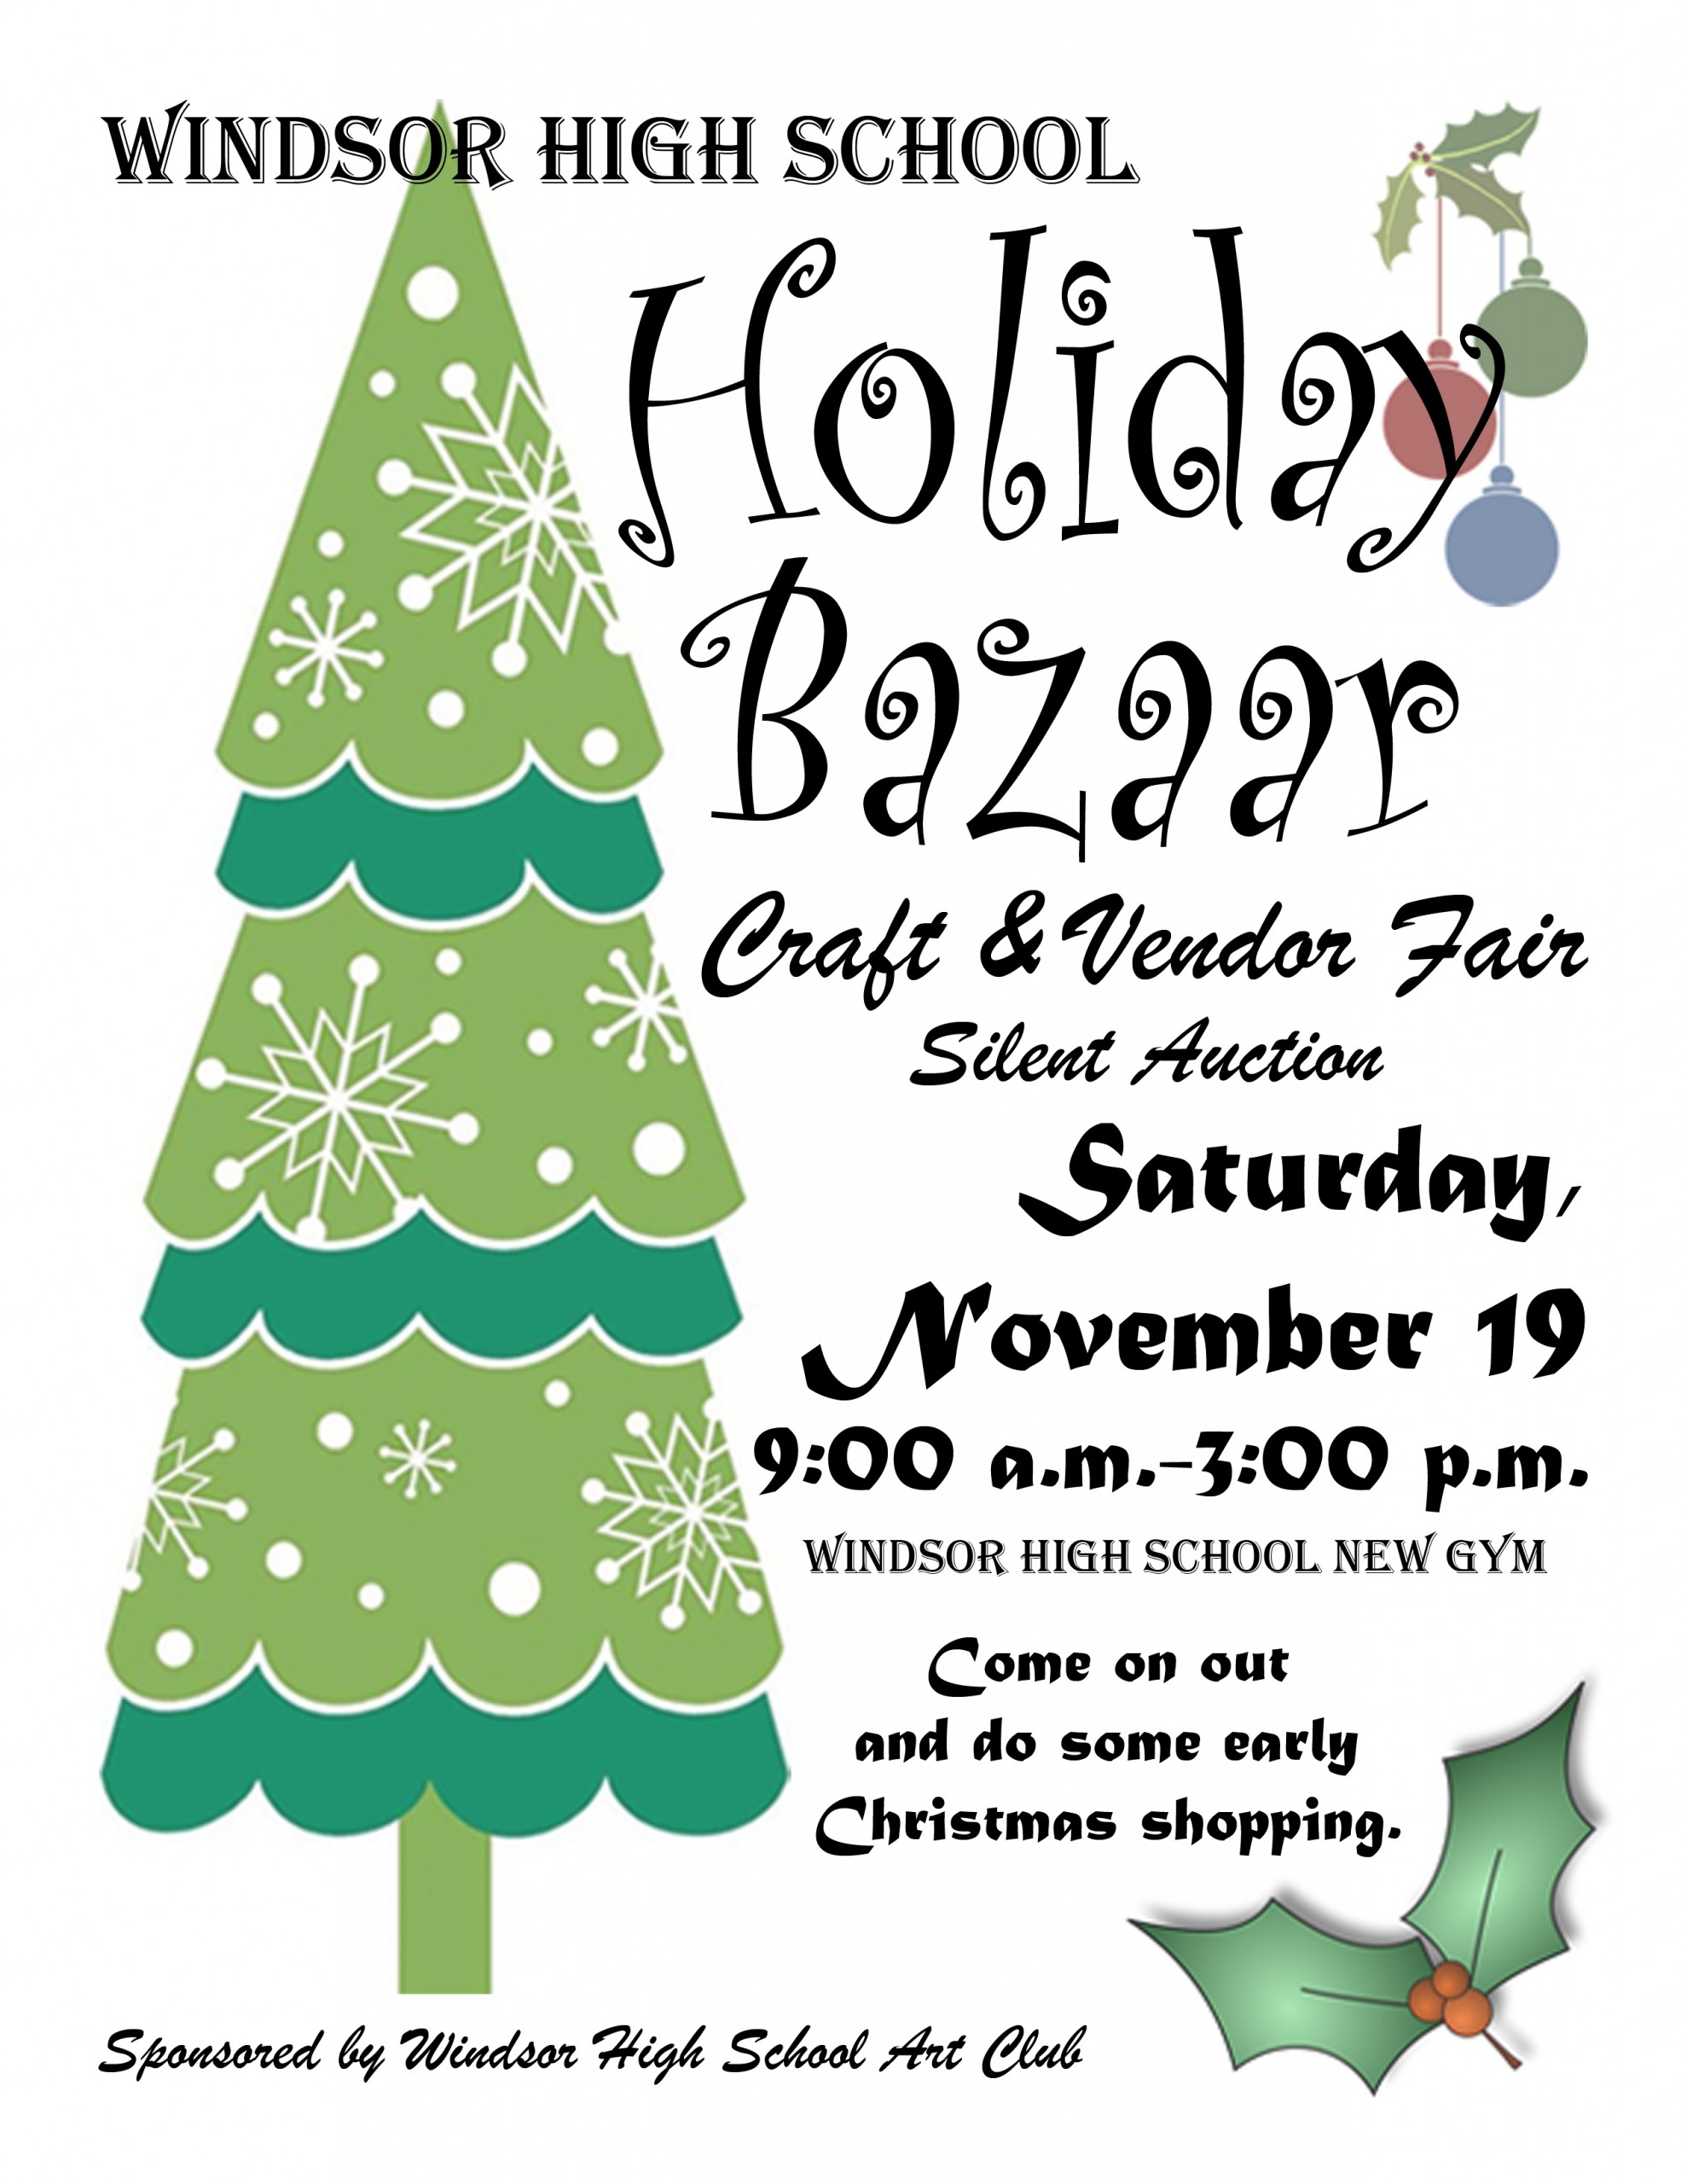 the windsor high school art club welcomes you to their holiday bazaar saturday november 19th from 9am 3pm this craft and vendor fair will also feature a